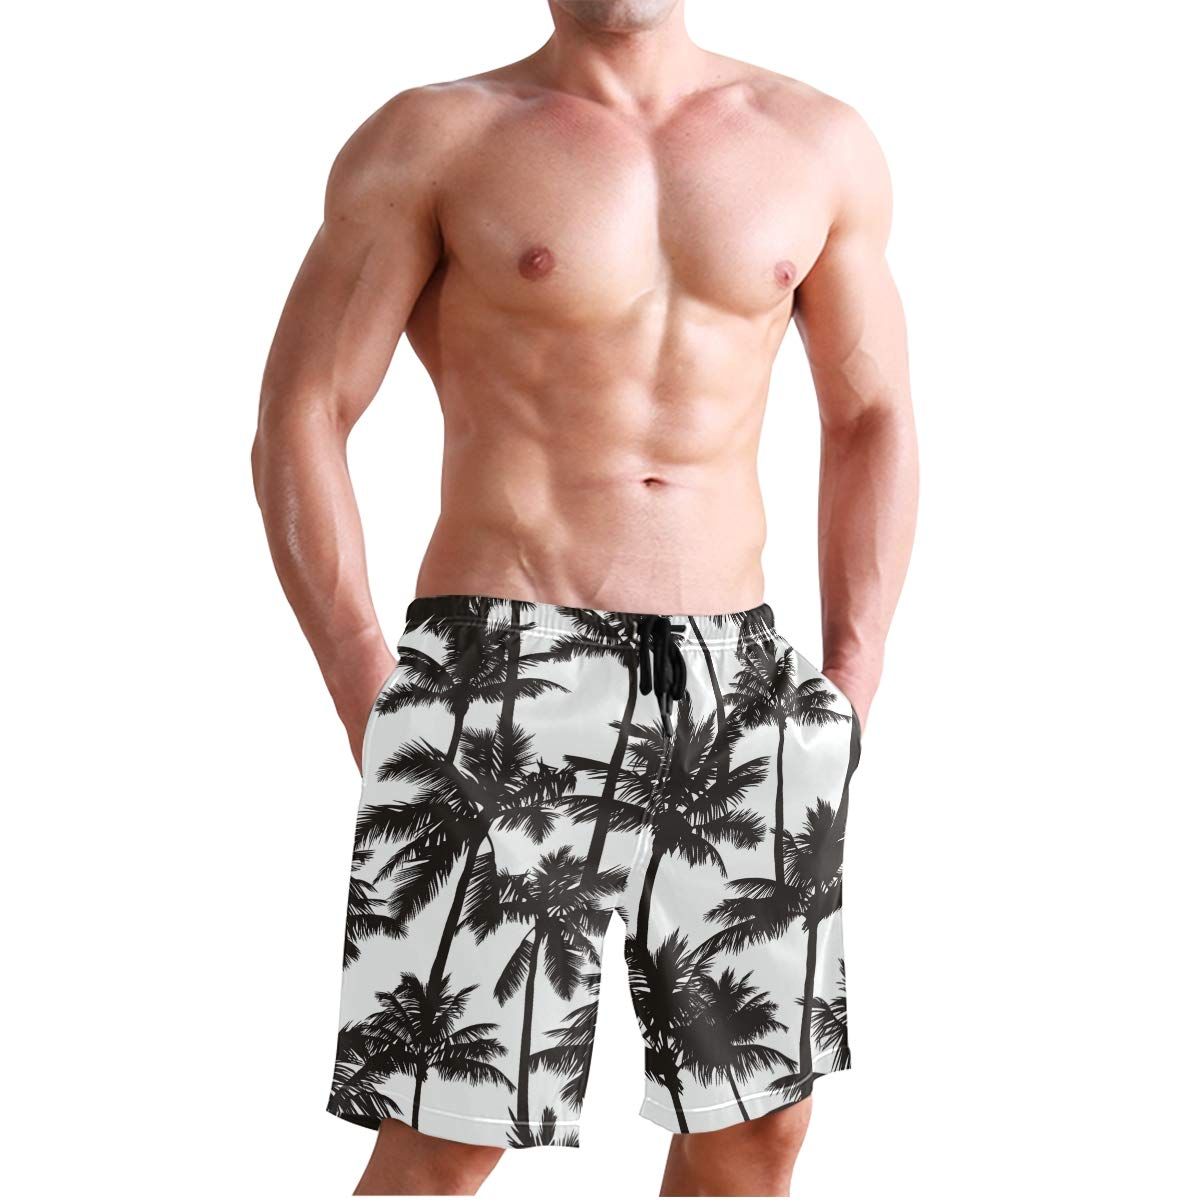 JERECY Mens Swim Trunks Tropical Black White Palm Tree Quick Dry Board Shorts with Drawstring and Pockets